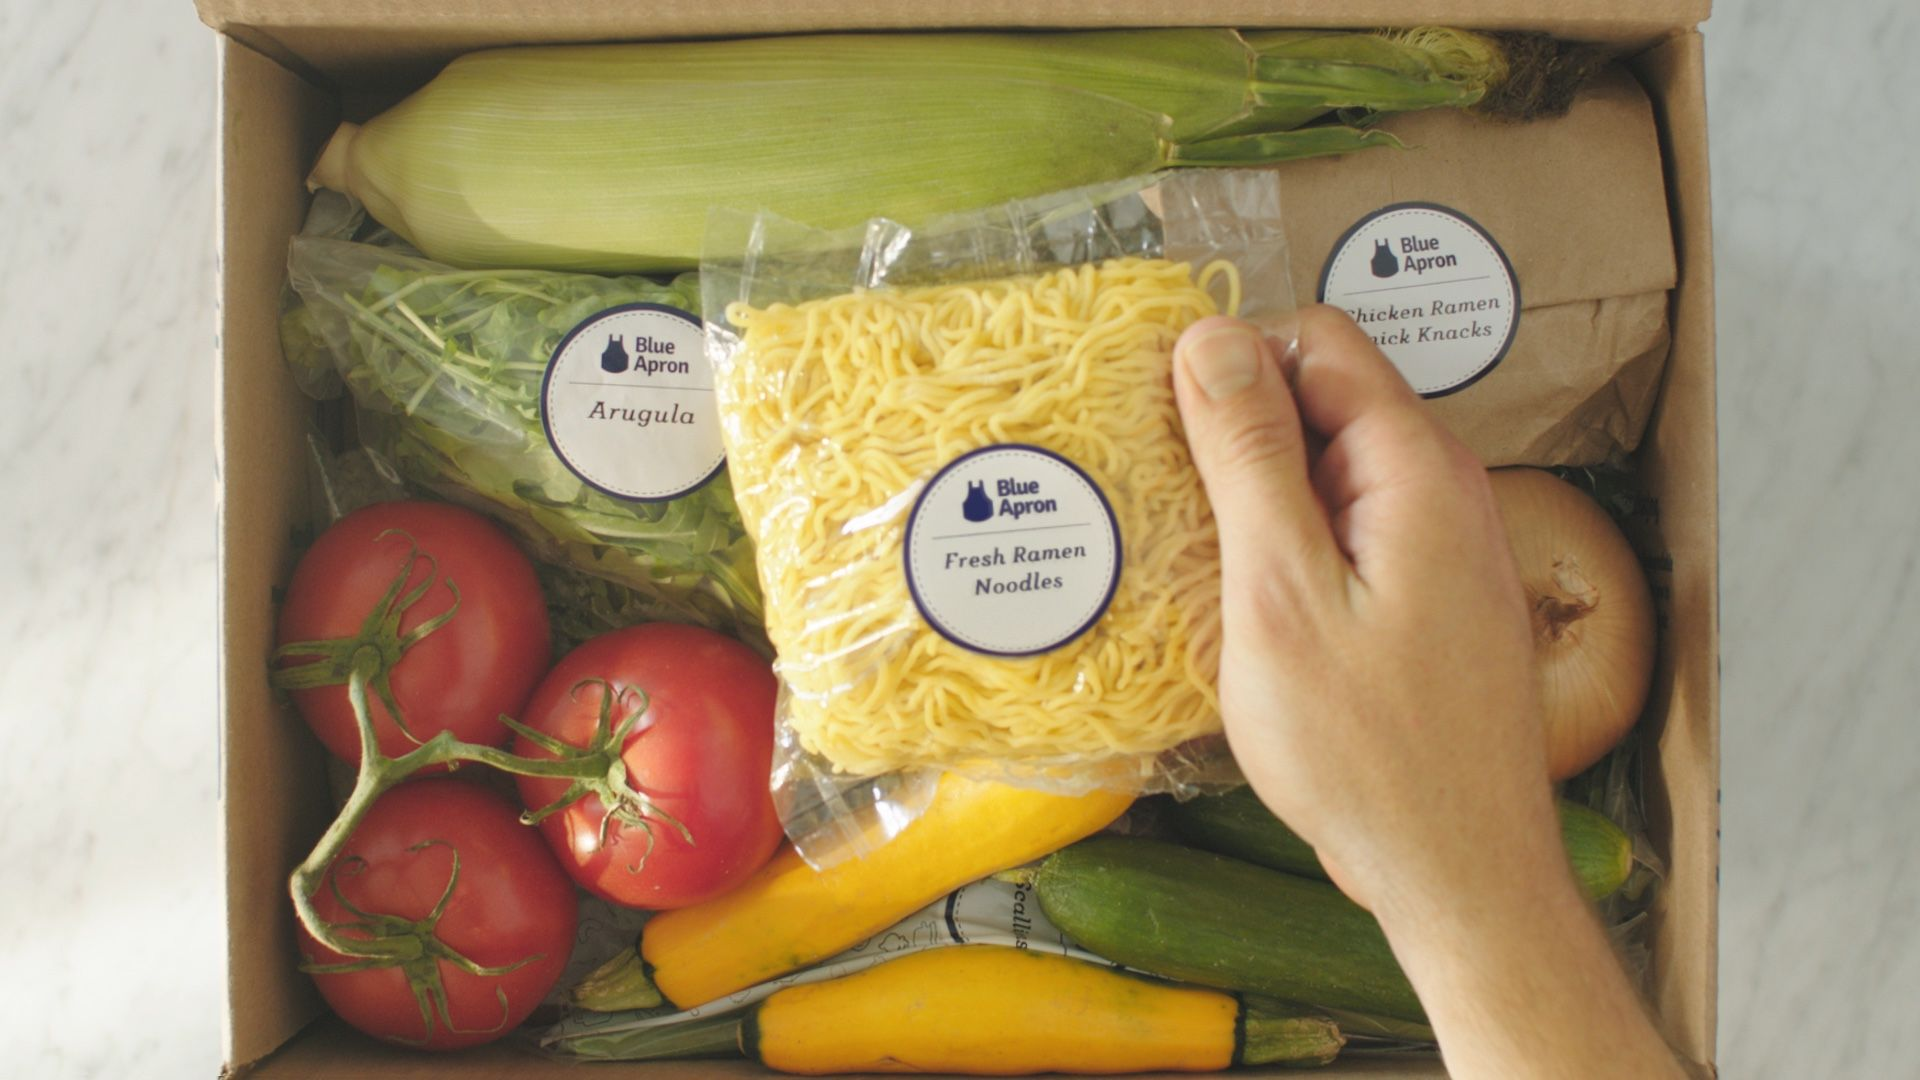 Blue apron arlington